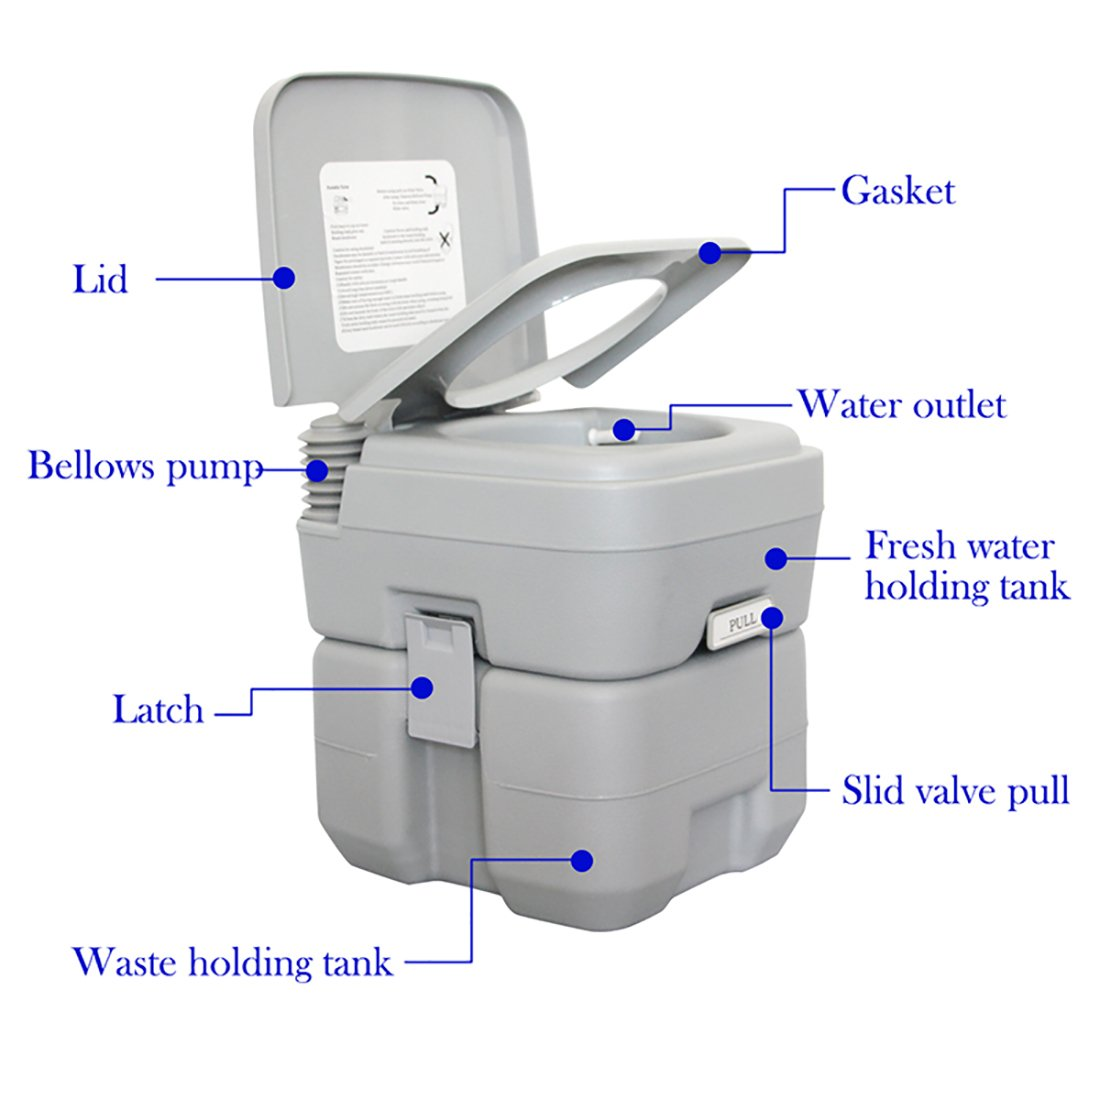 Amazon.com: ESport Portable Toilet For Camping RV Boat, Add Water Into  Fresh Water Tank With Double Compartments And Flush Mechanism Satisfaction  Guarantee, ...